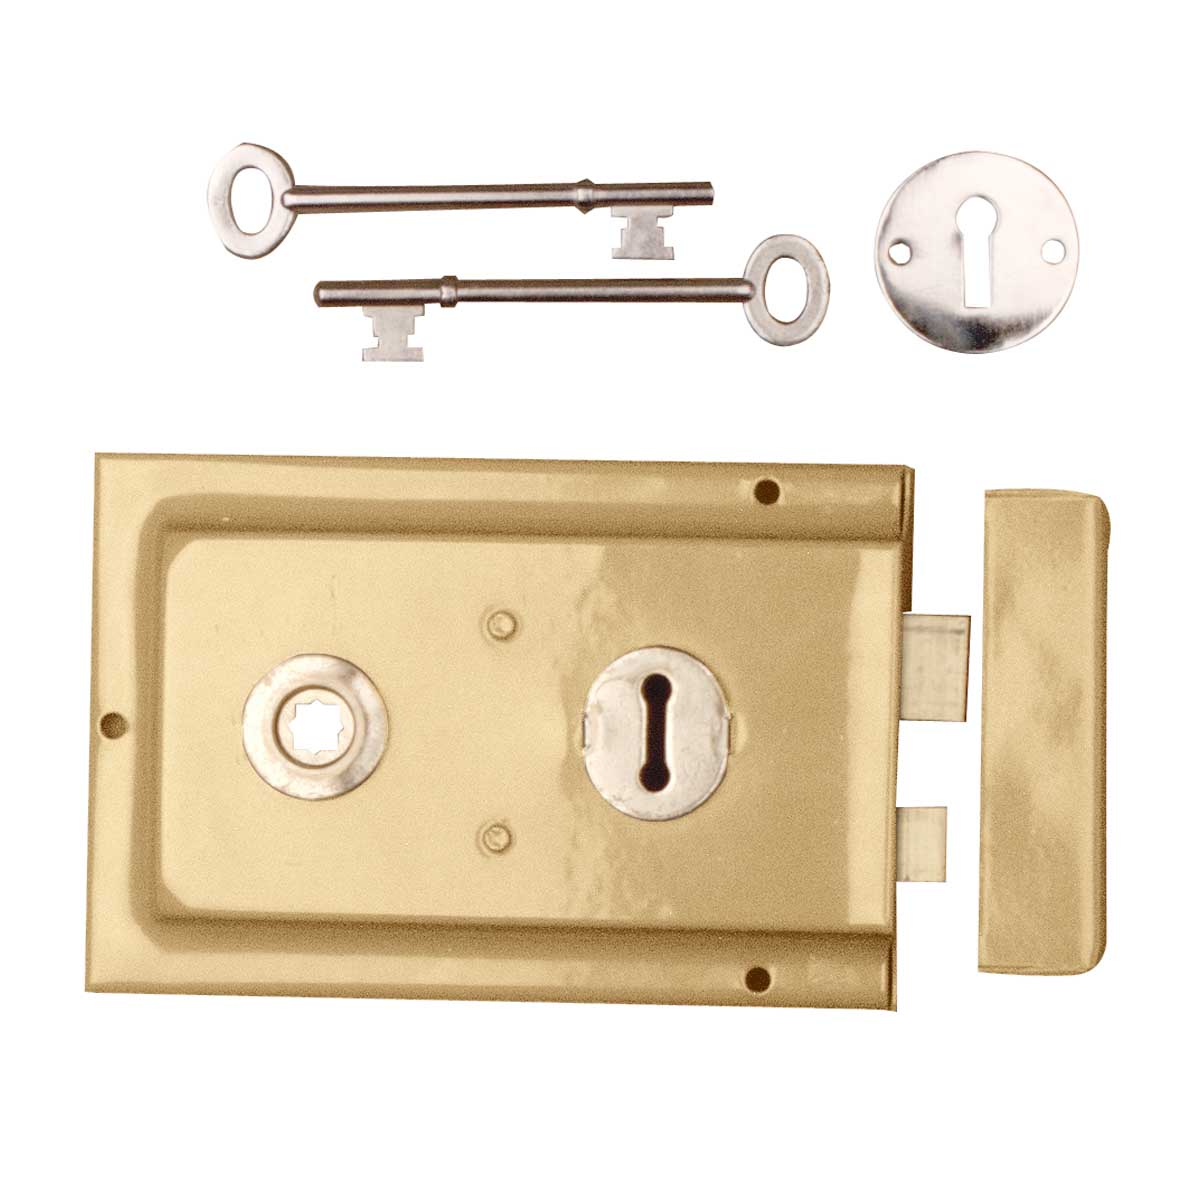 "Victorian Rim Lock Brass Plated Steel 6 1/8"" L x 4"" H 